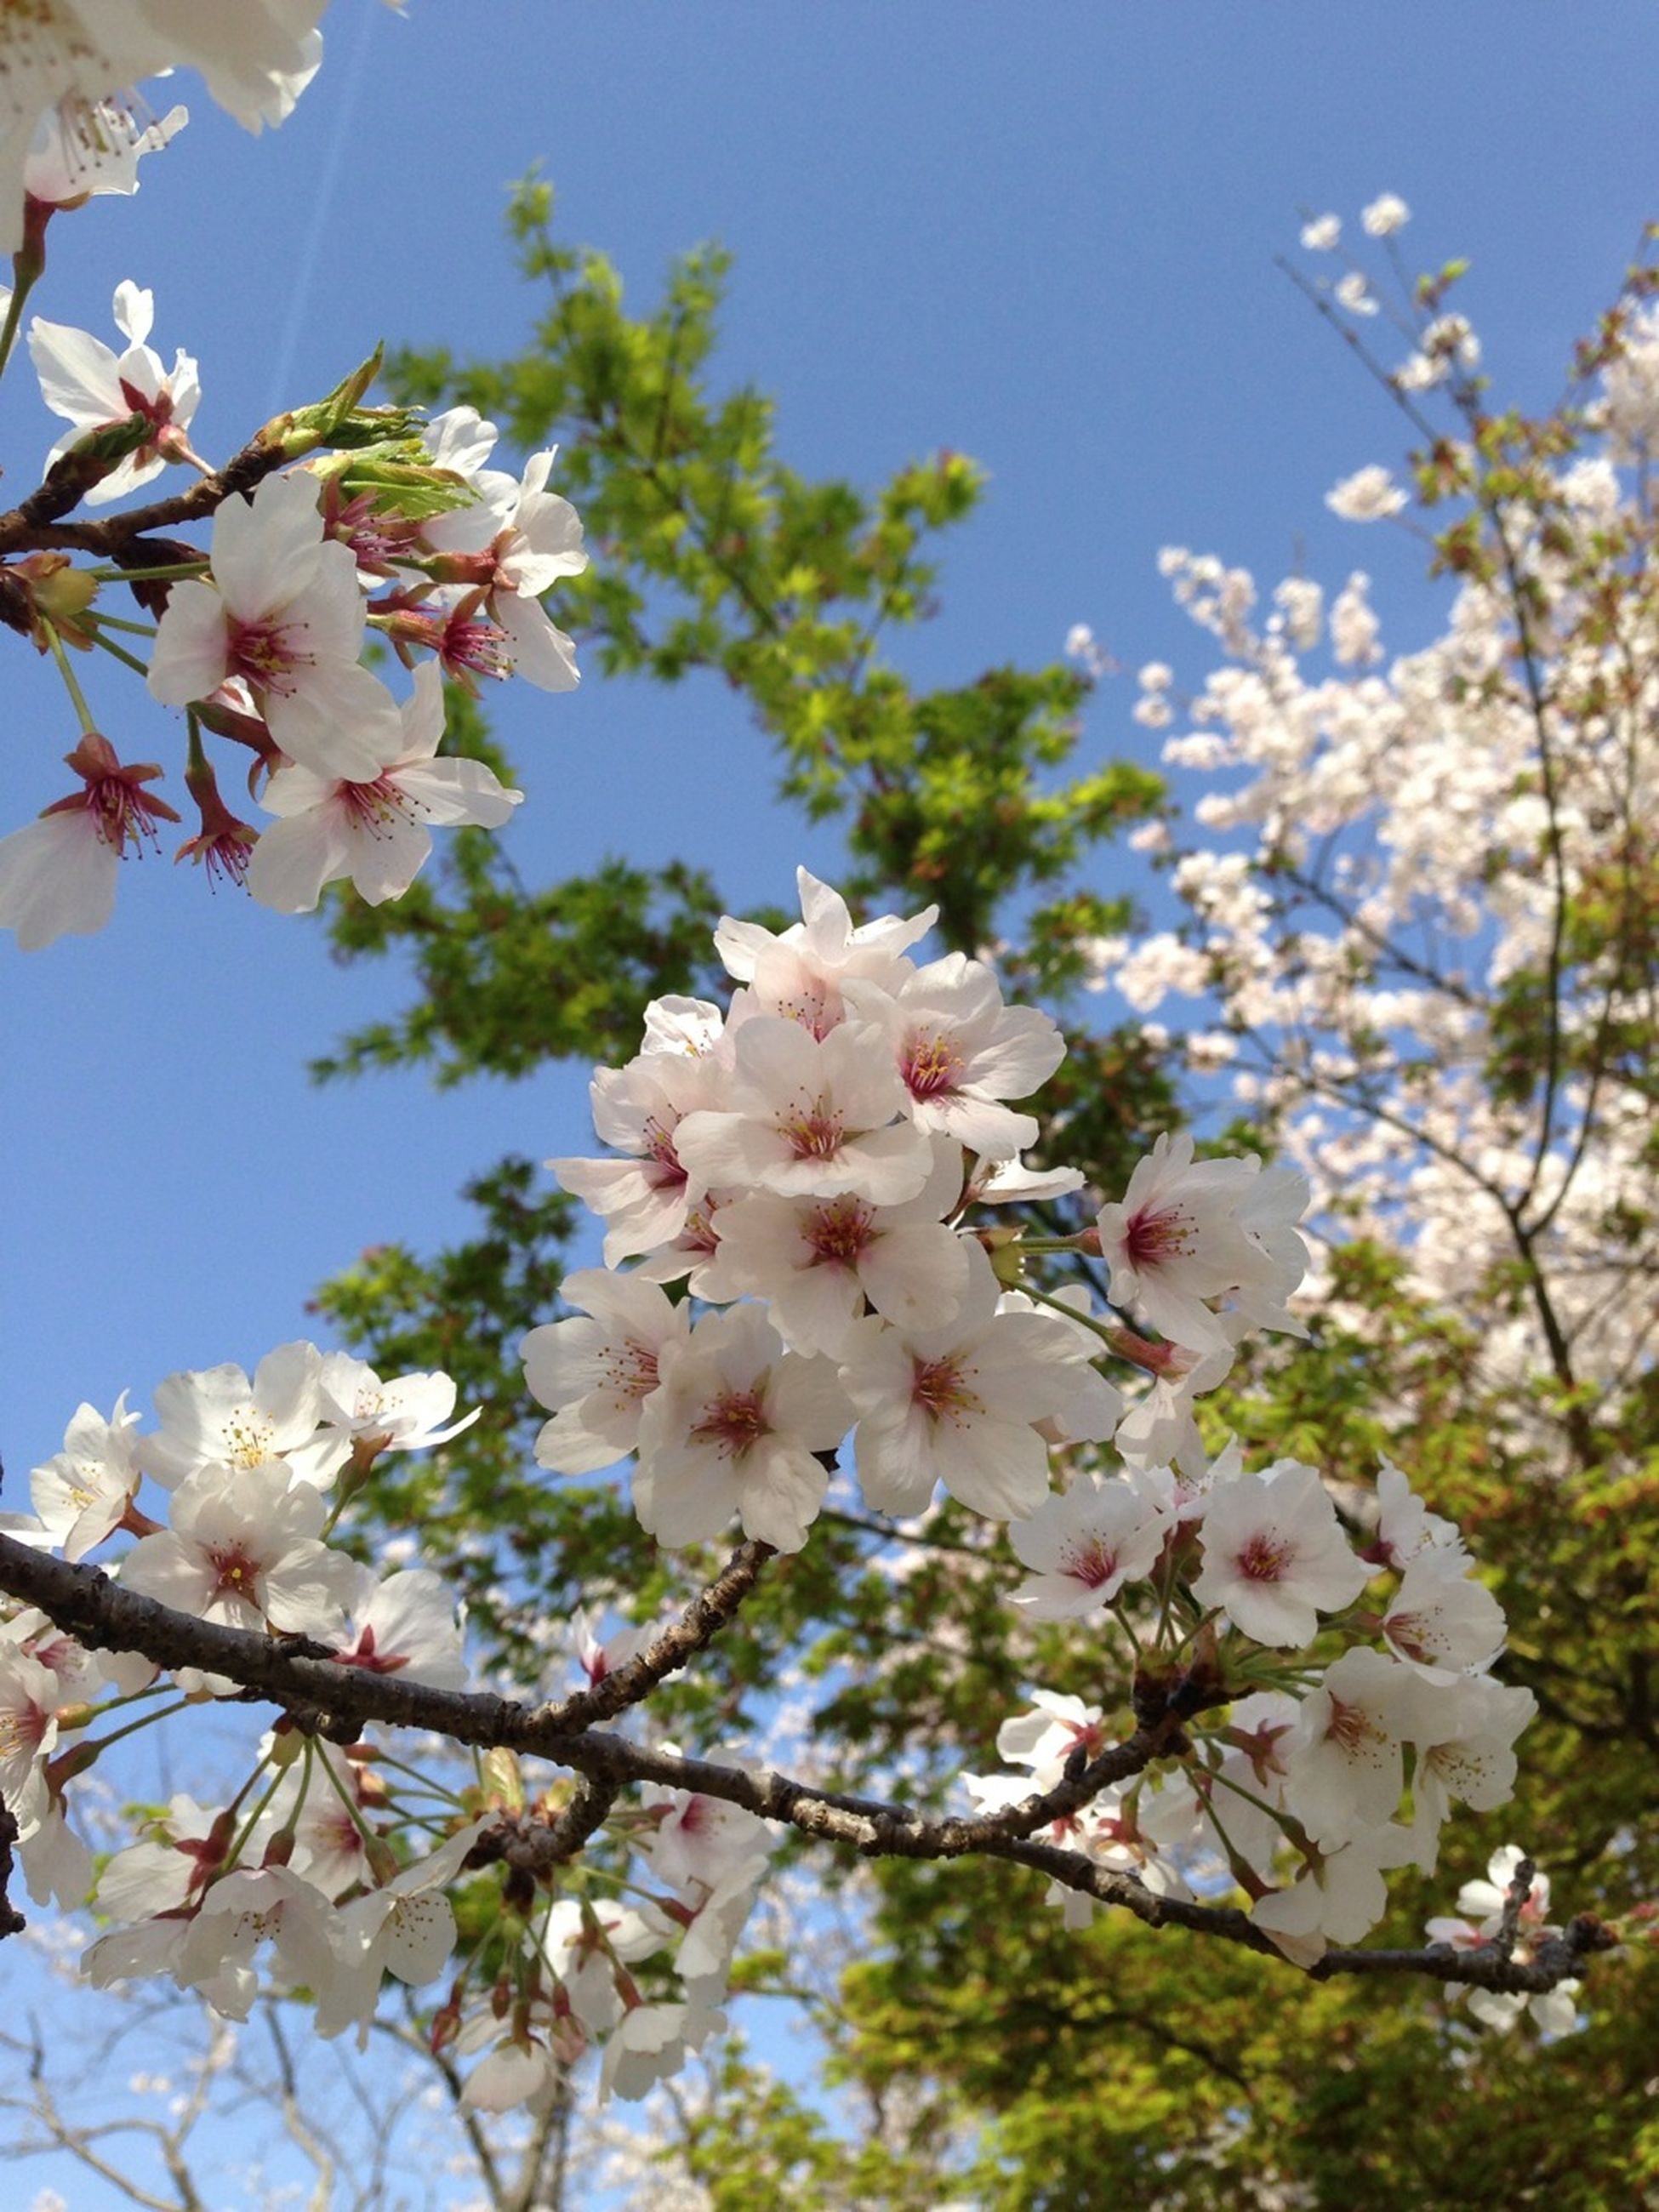 flower, freshness, fragility, low angle view, growth, branch, tree, petal, blossom, beauty in nature, cherry blossom, white color, nature, blooming, in bloom, springtime, cherry tree, flower head, sky, clear sky